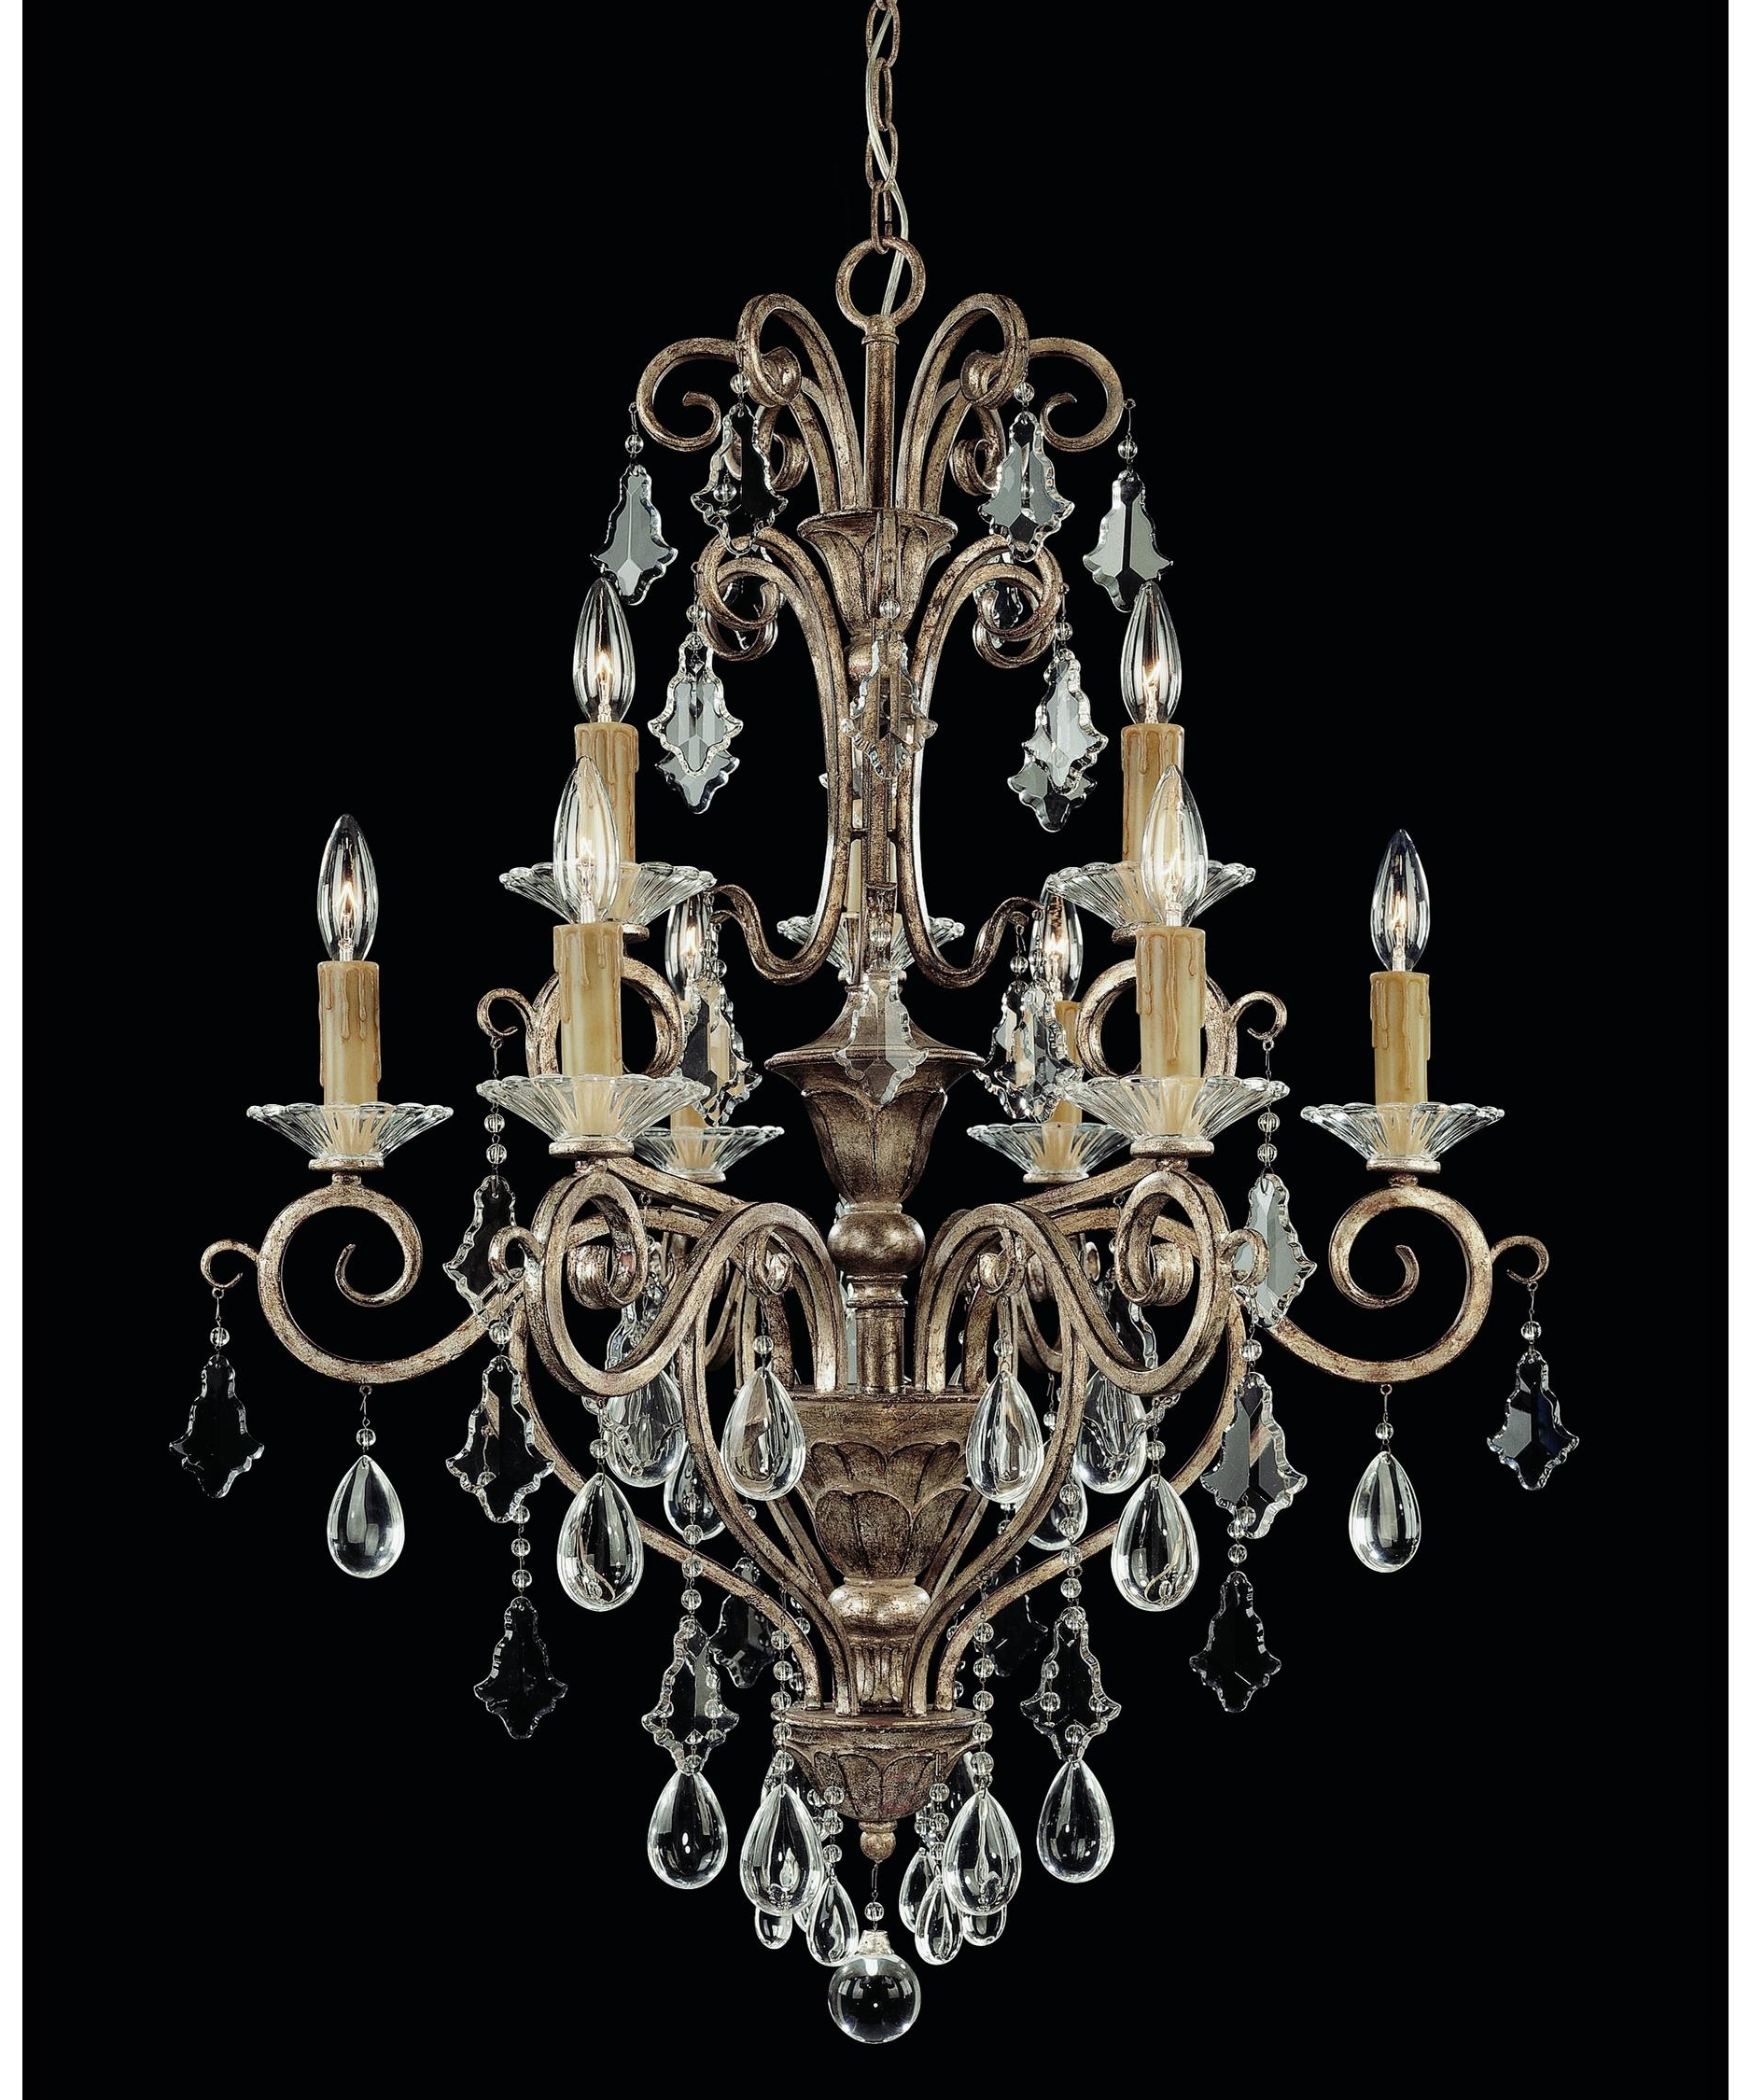 Latest Savoy House 1 1398 9 256 Antoinette 28 Inch Wide 9 Light Chandelier Inside Savoy House Chandeliers (View 6 of 20)